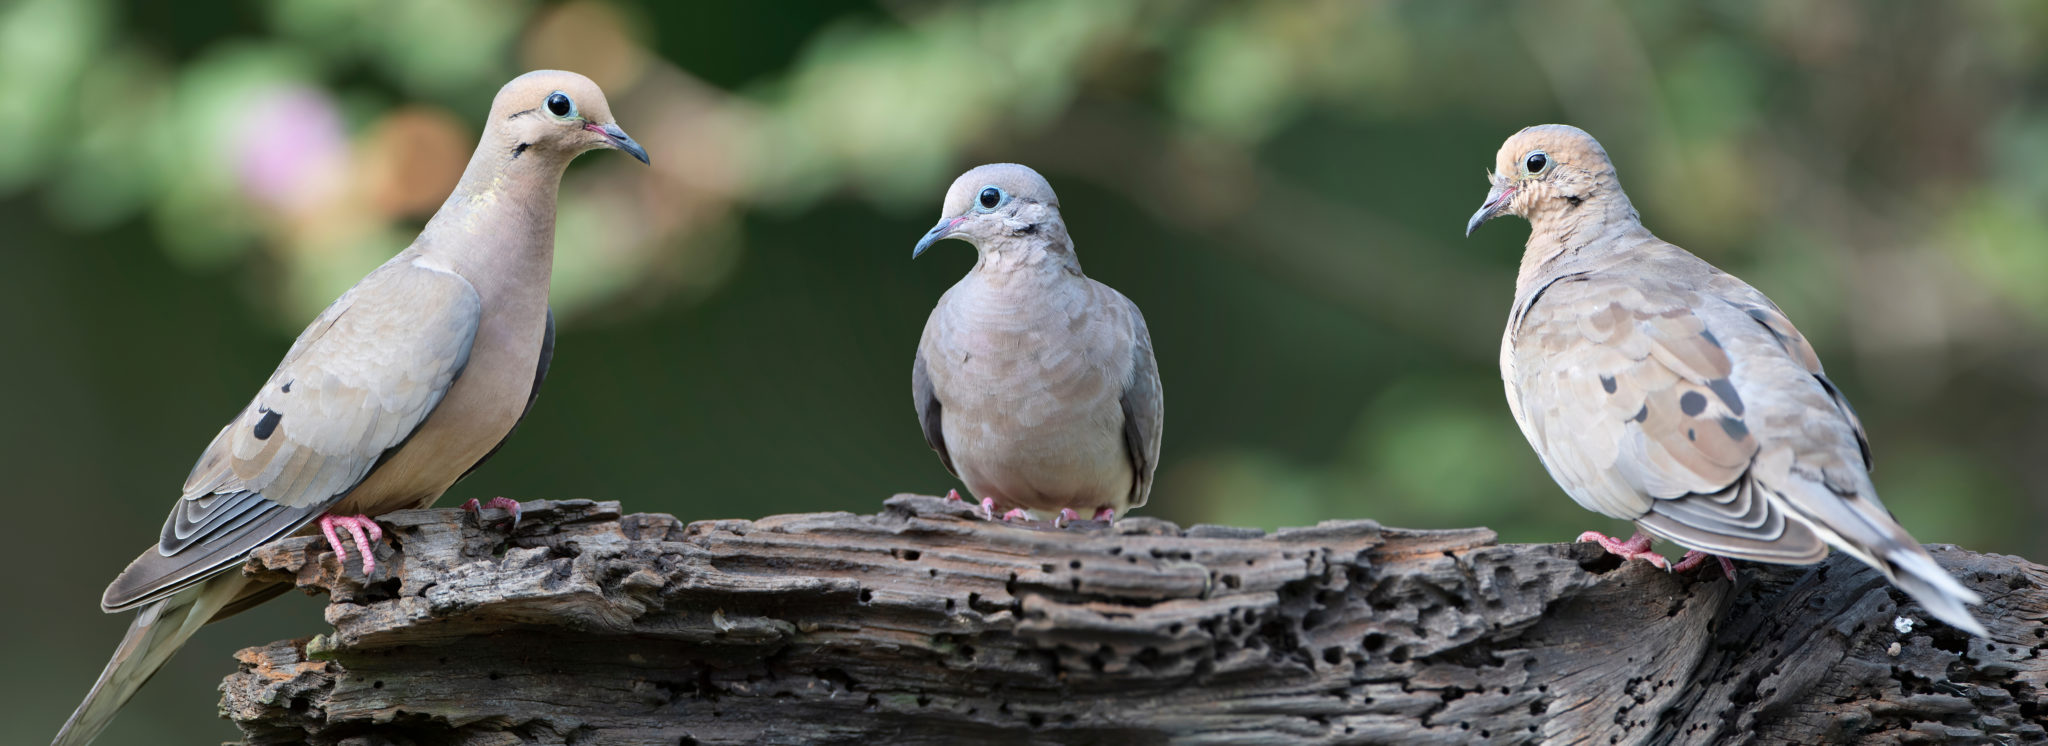 doves in the united states